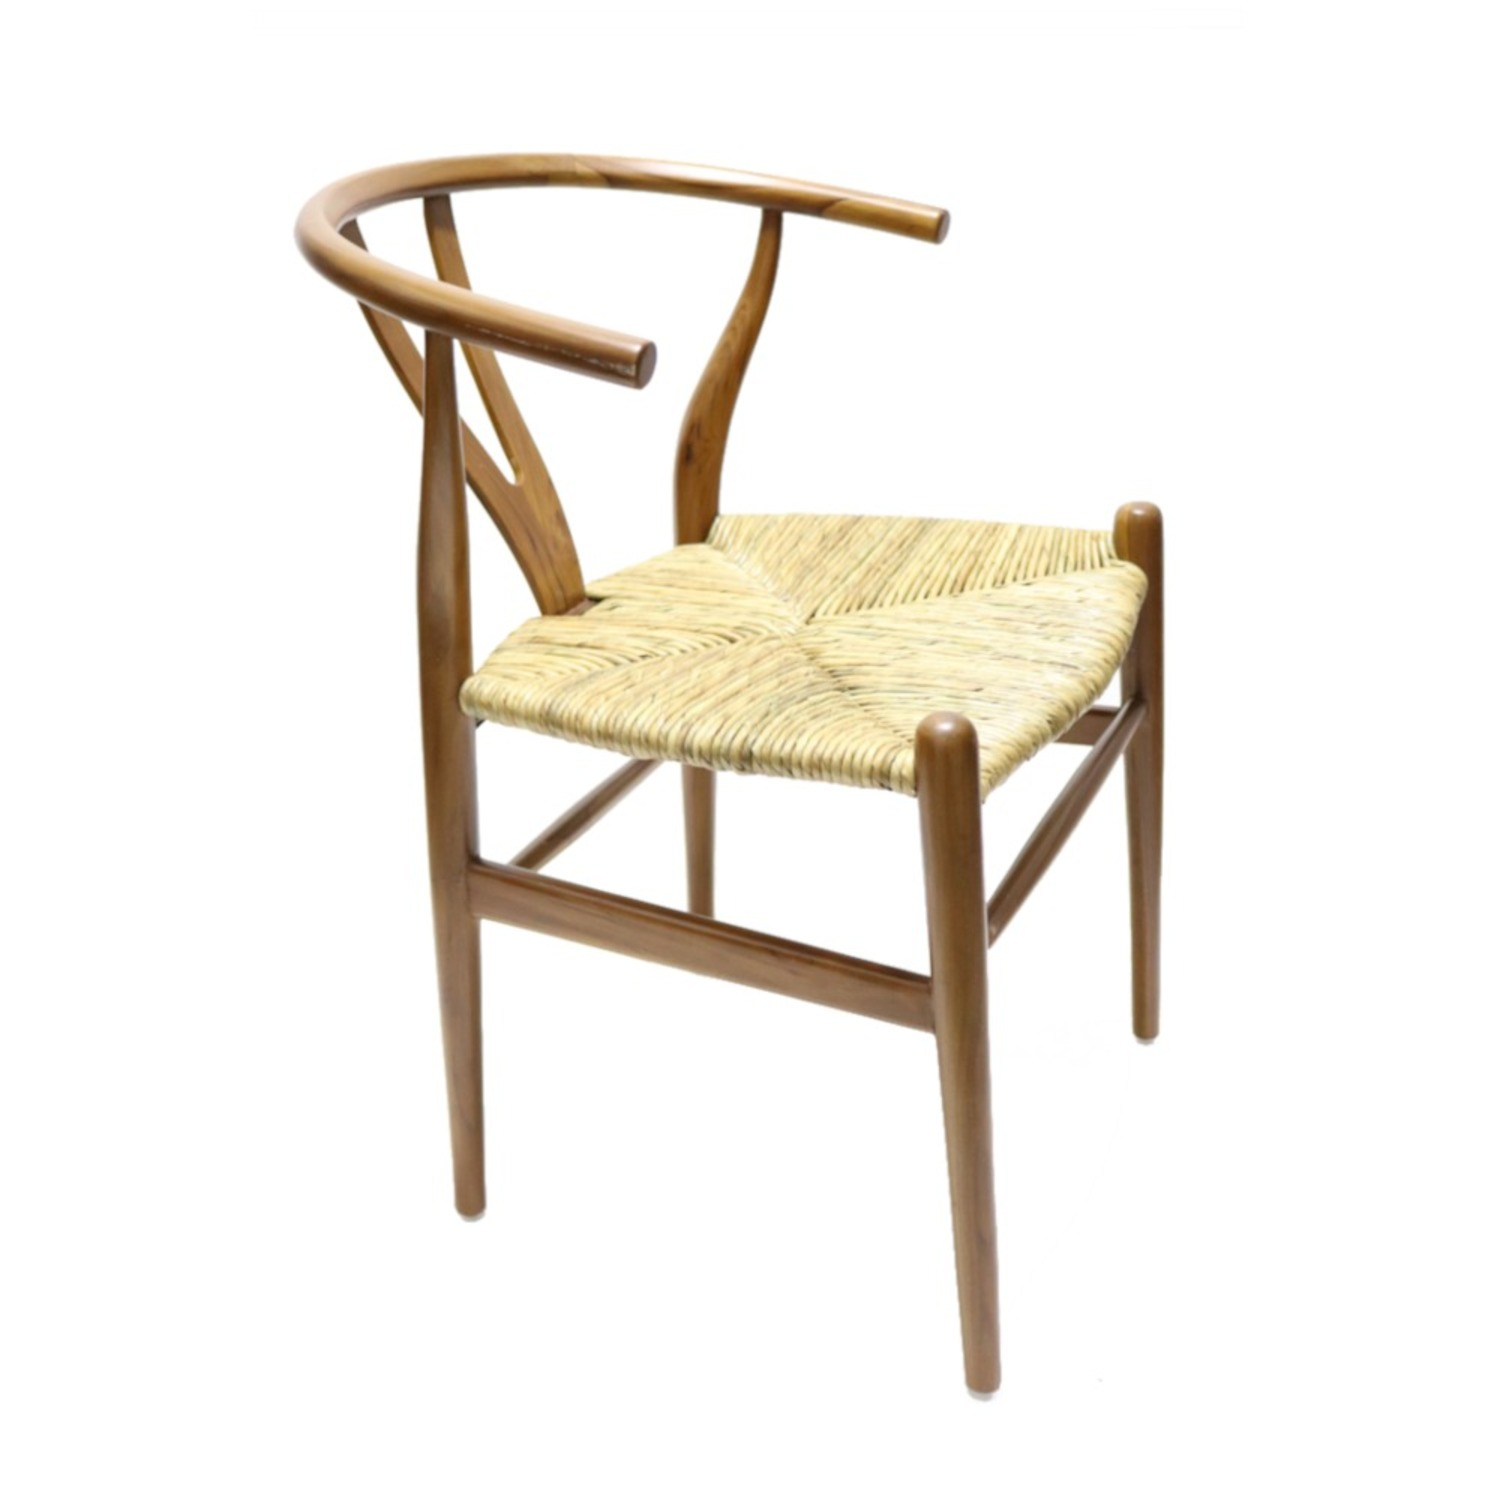 Dining Chair In Walnut Frame & Natural Hemp Seat - image-0